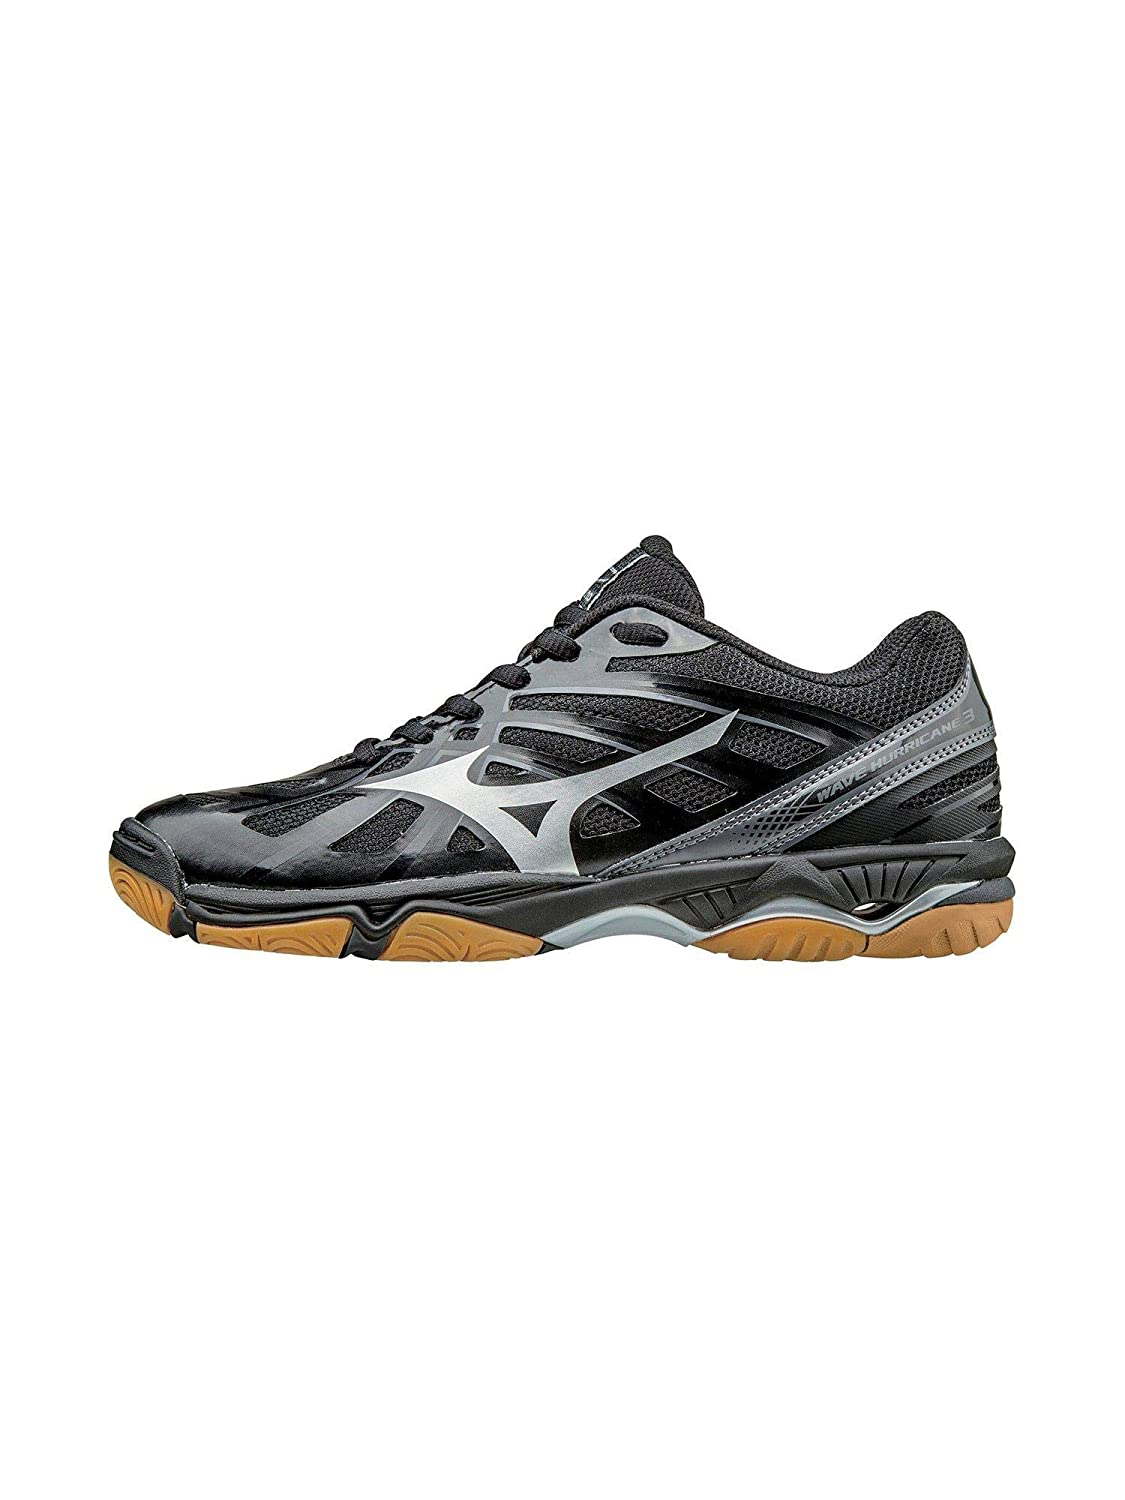 mizuno volleyball shoes womens 2019 xls iii